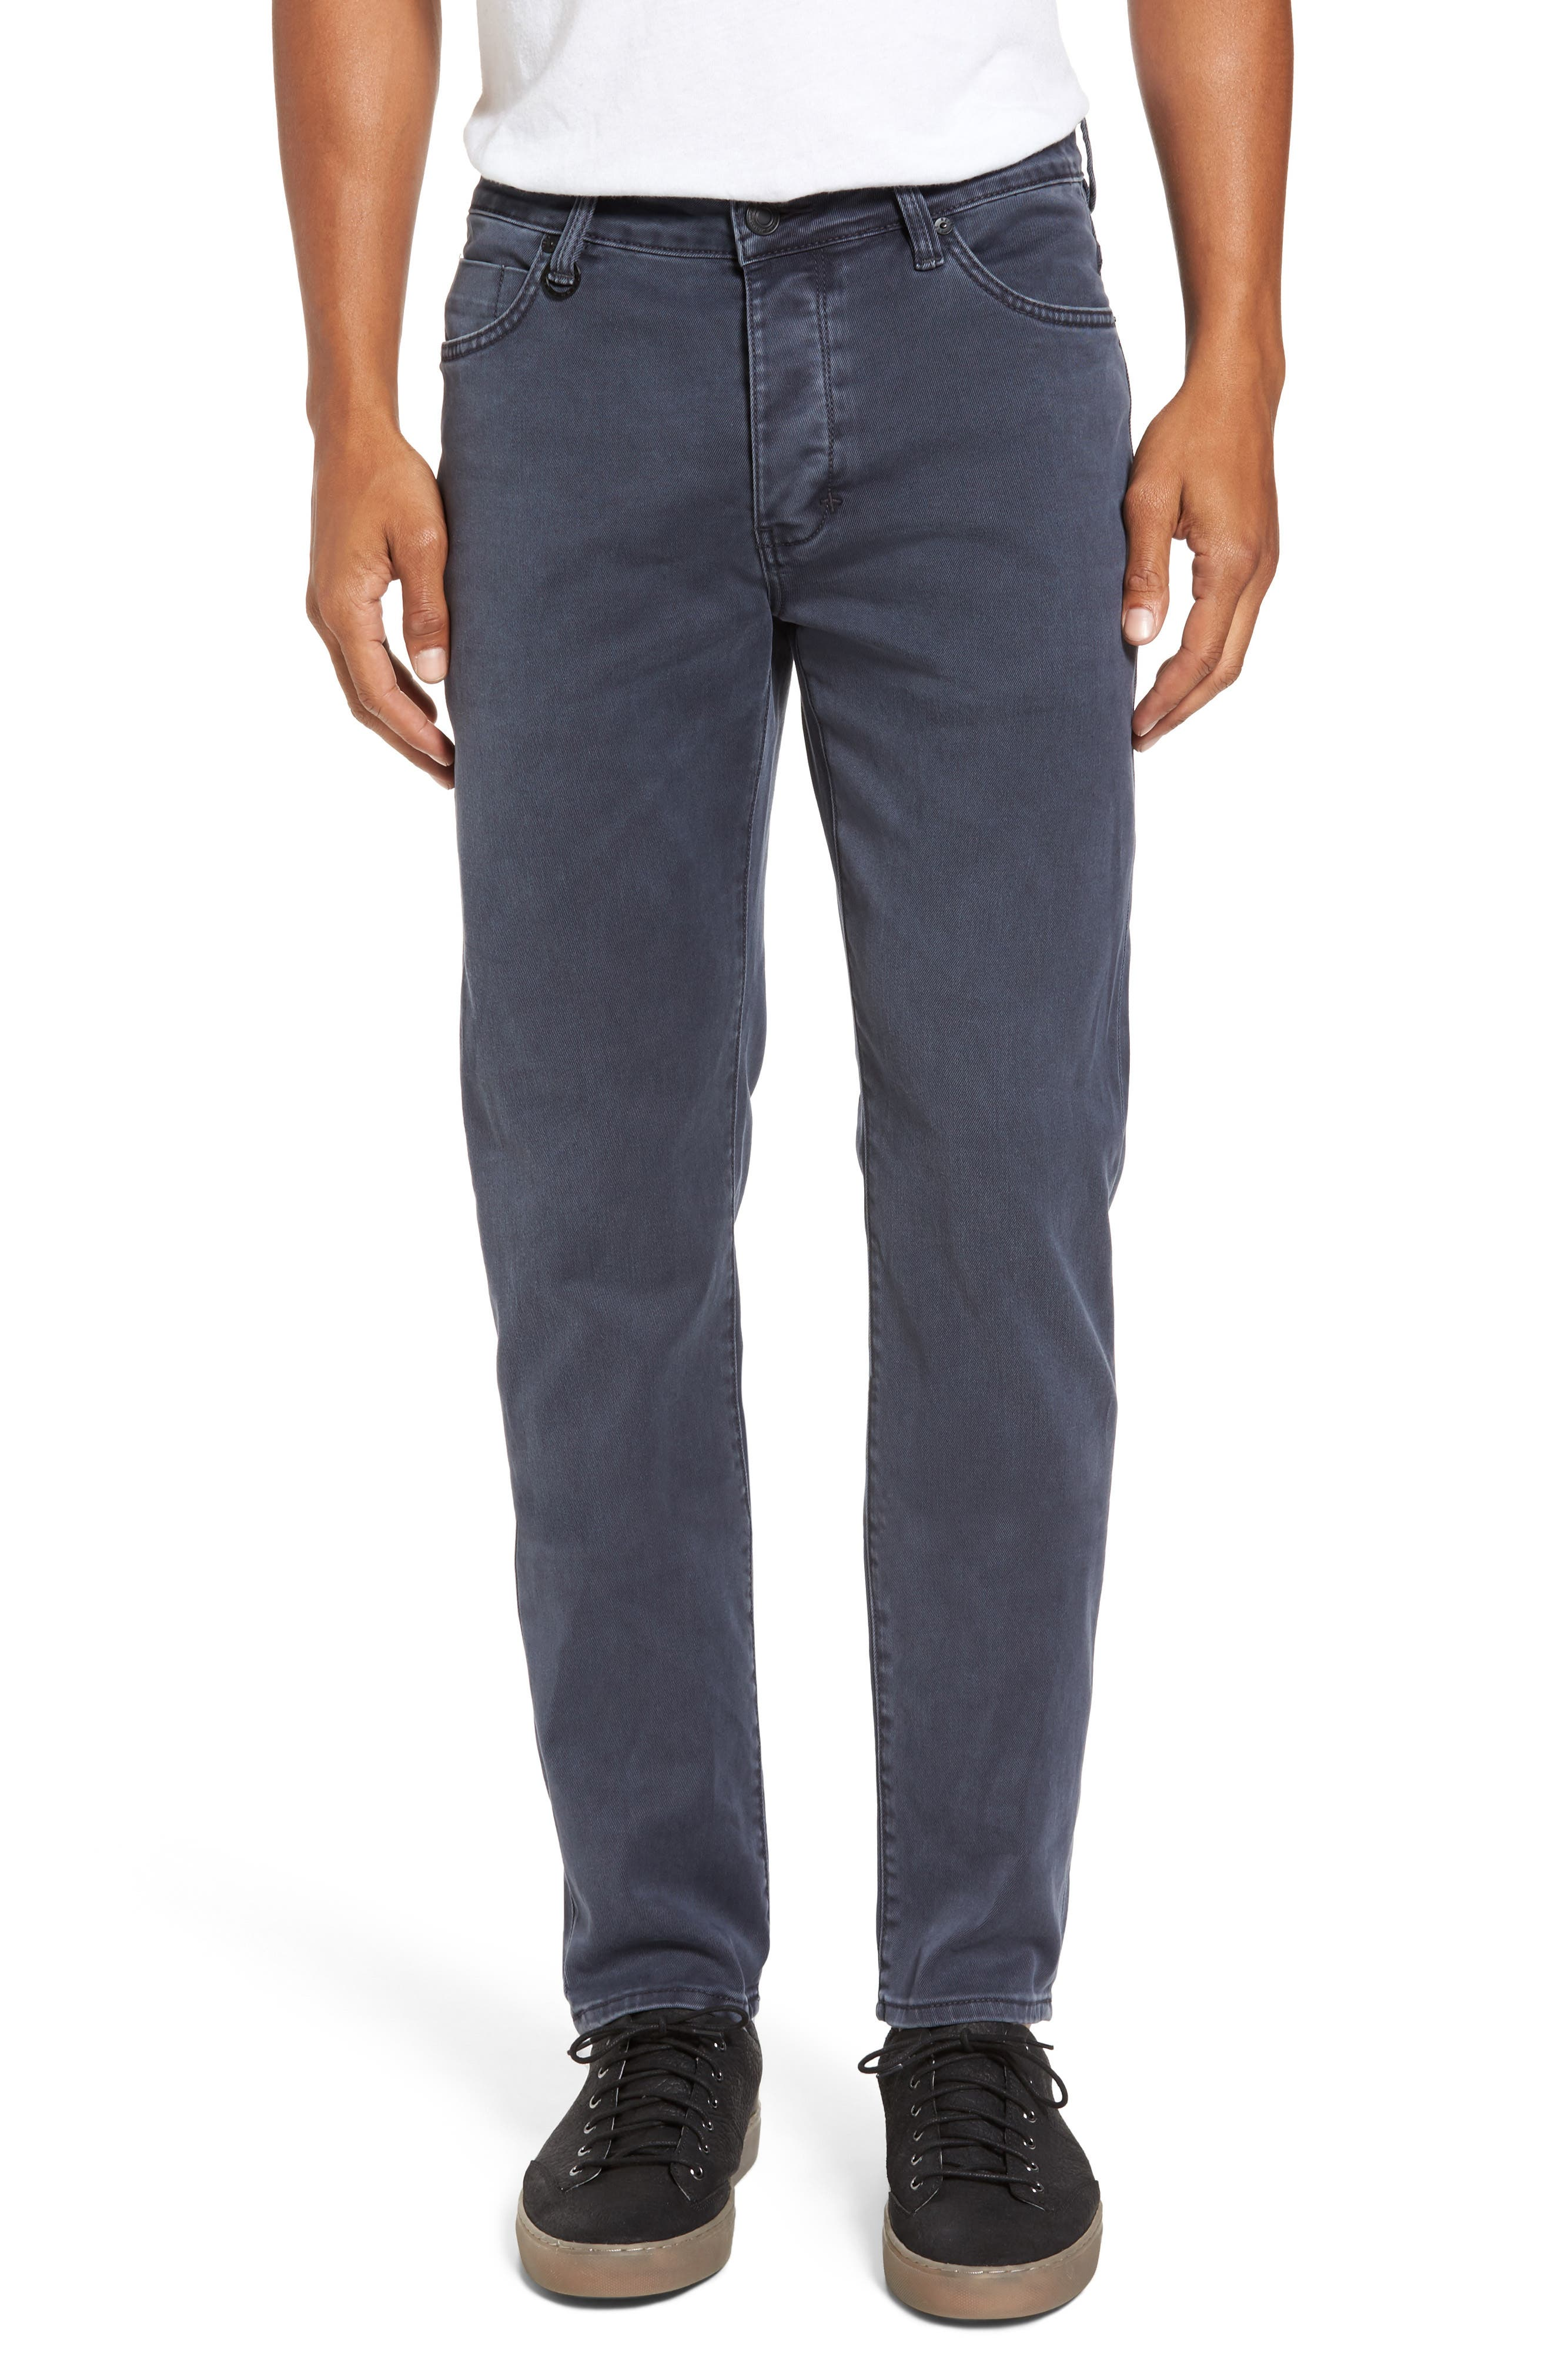 Alternate Image 1 Selected - NEUW Lou Slim Fit Jeans (Liberte)